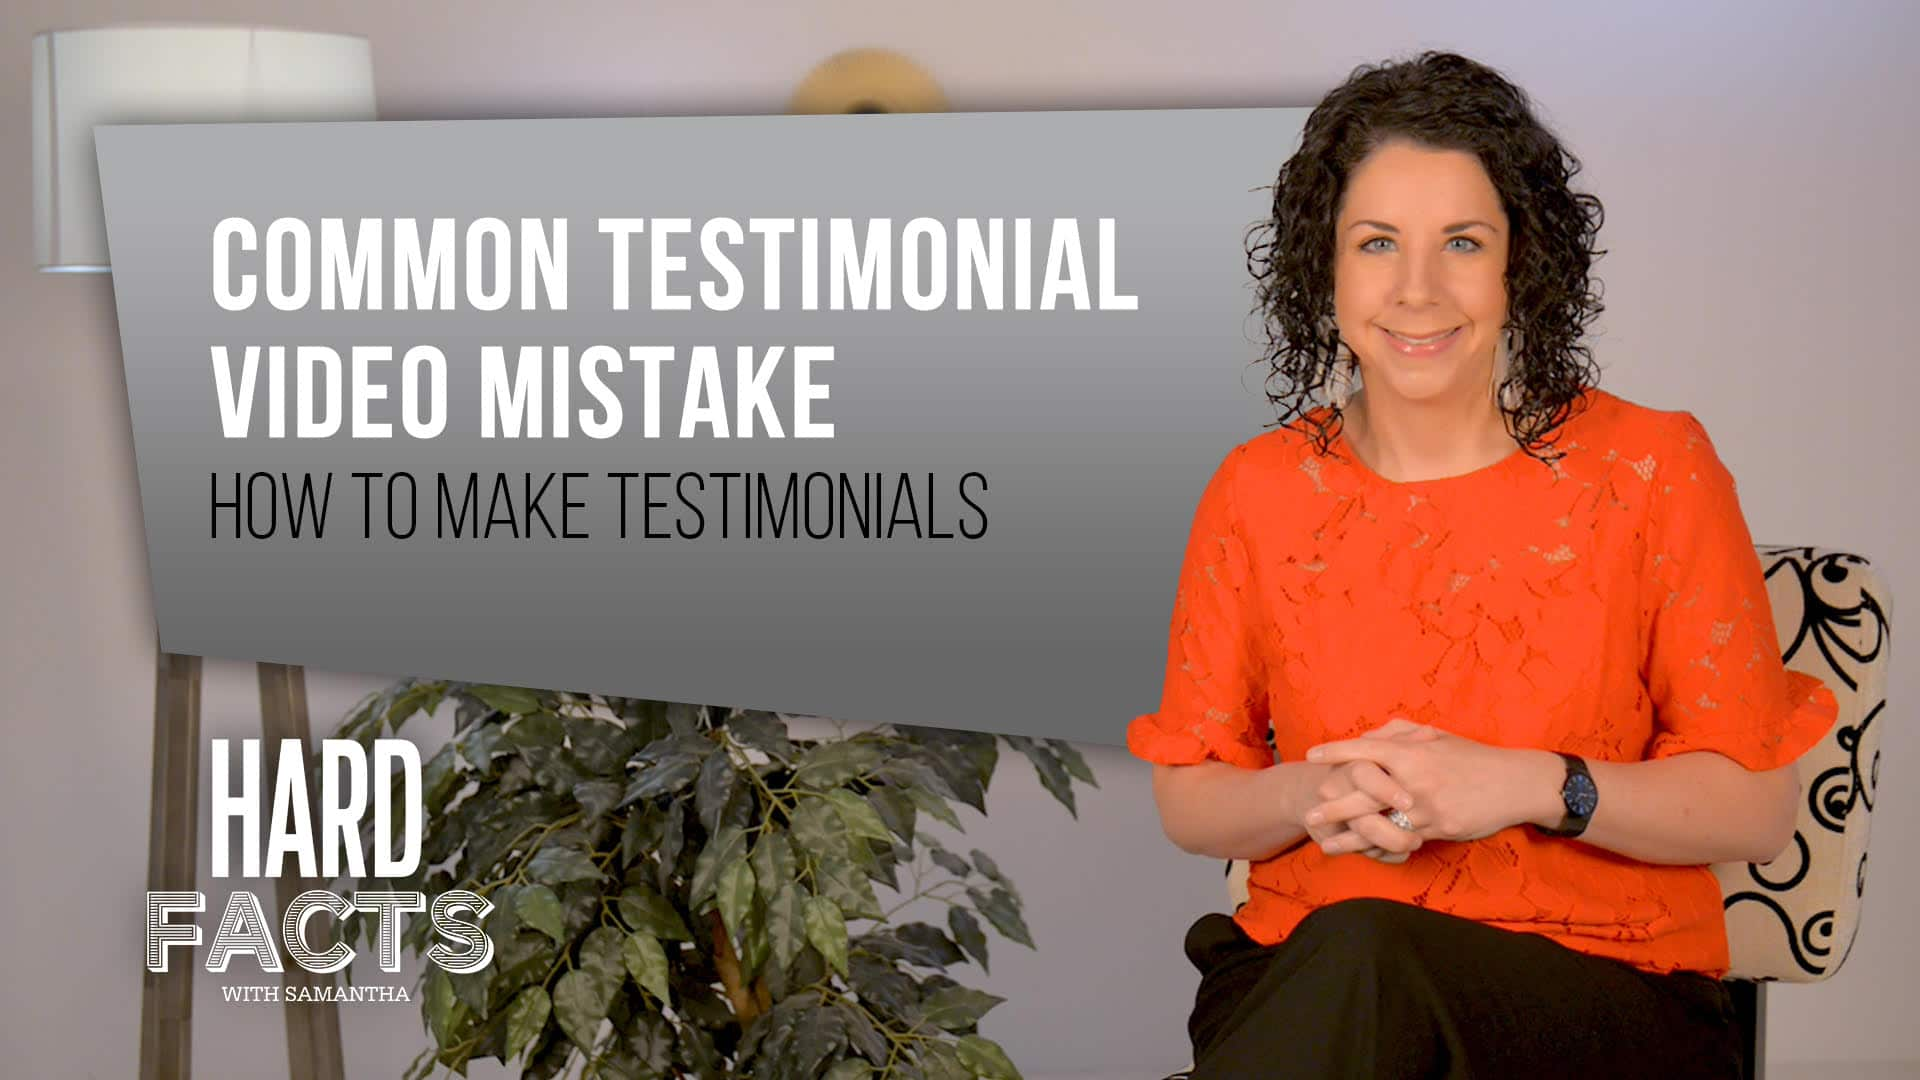 Common Testimonial Video Mistakes – How to Make Testimonials